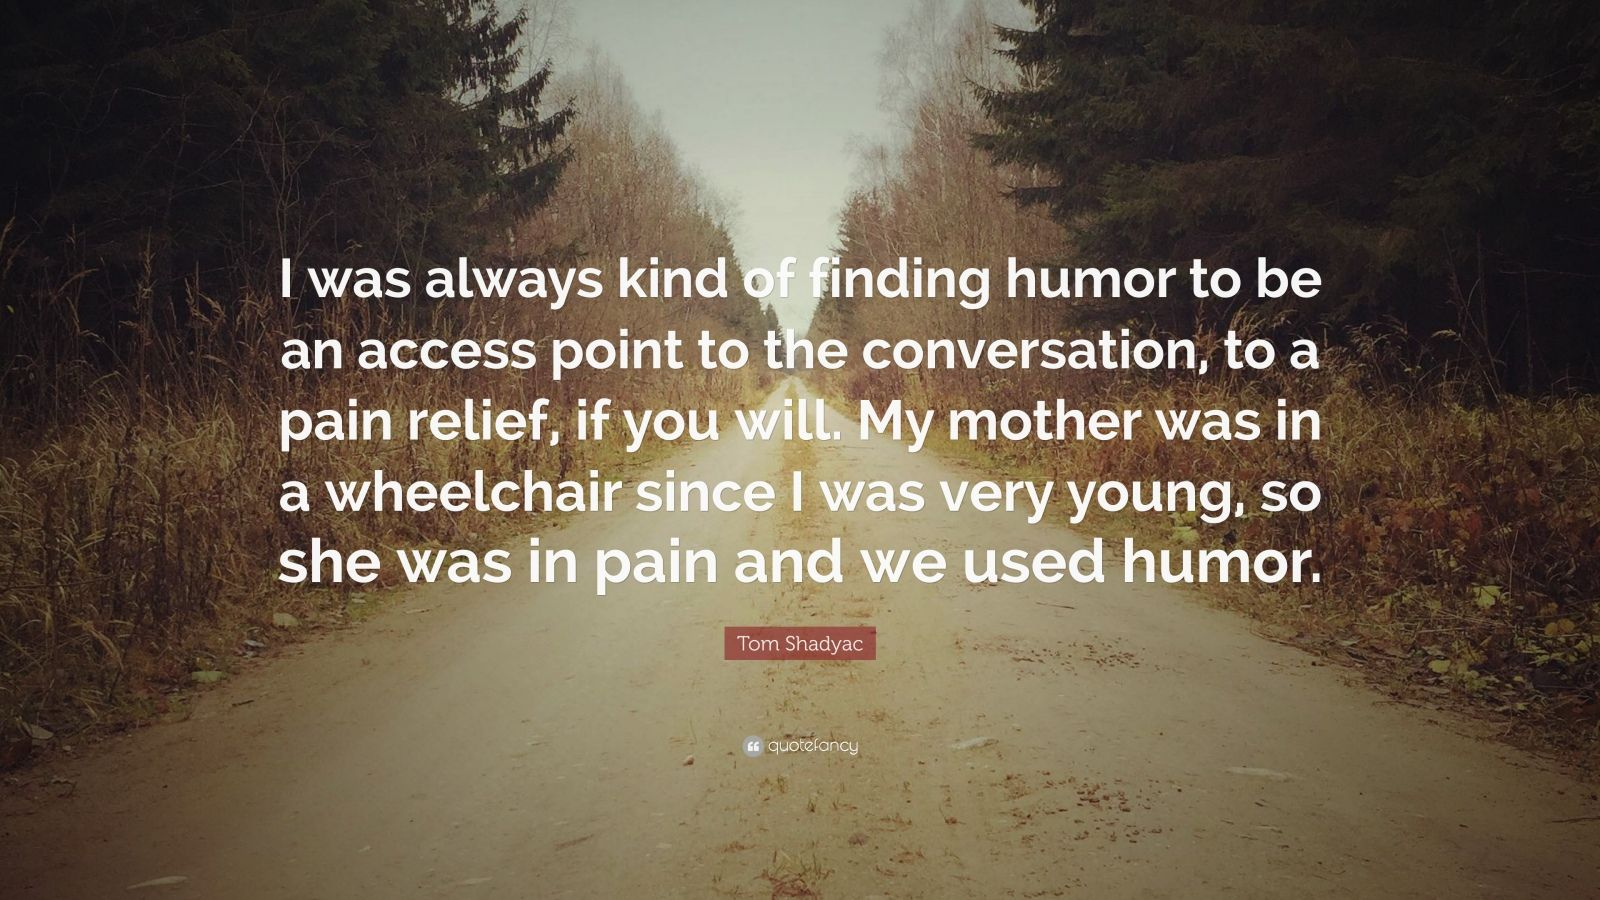 """Tom Shadyac Quote: """"I was always kind of finding humor to be an access point to the conversation, to a pain relief, if you will. My mother was in a wheelchair since I was very young, so she was in pain and we used humor."""""""